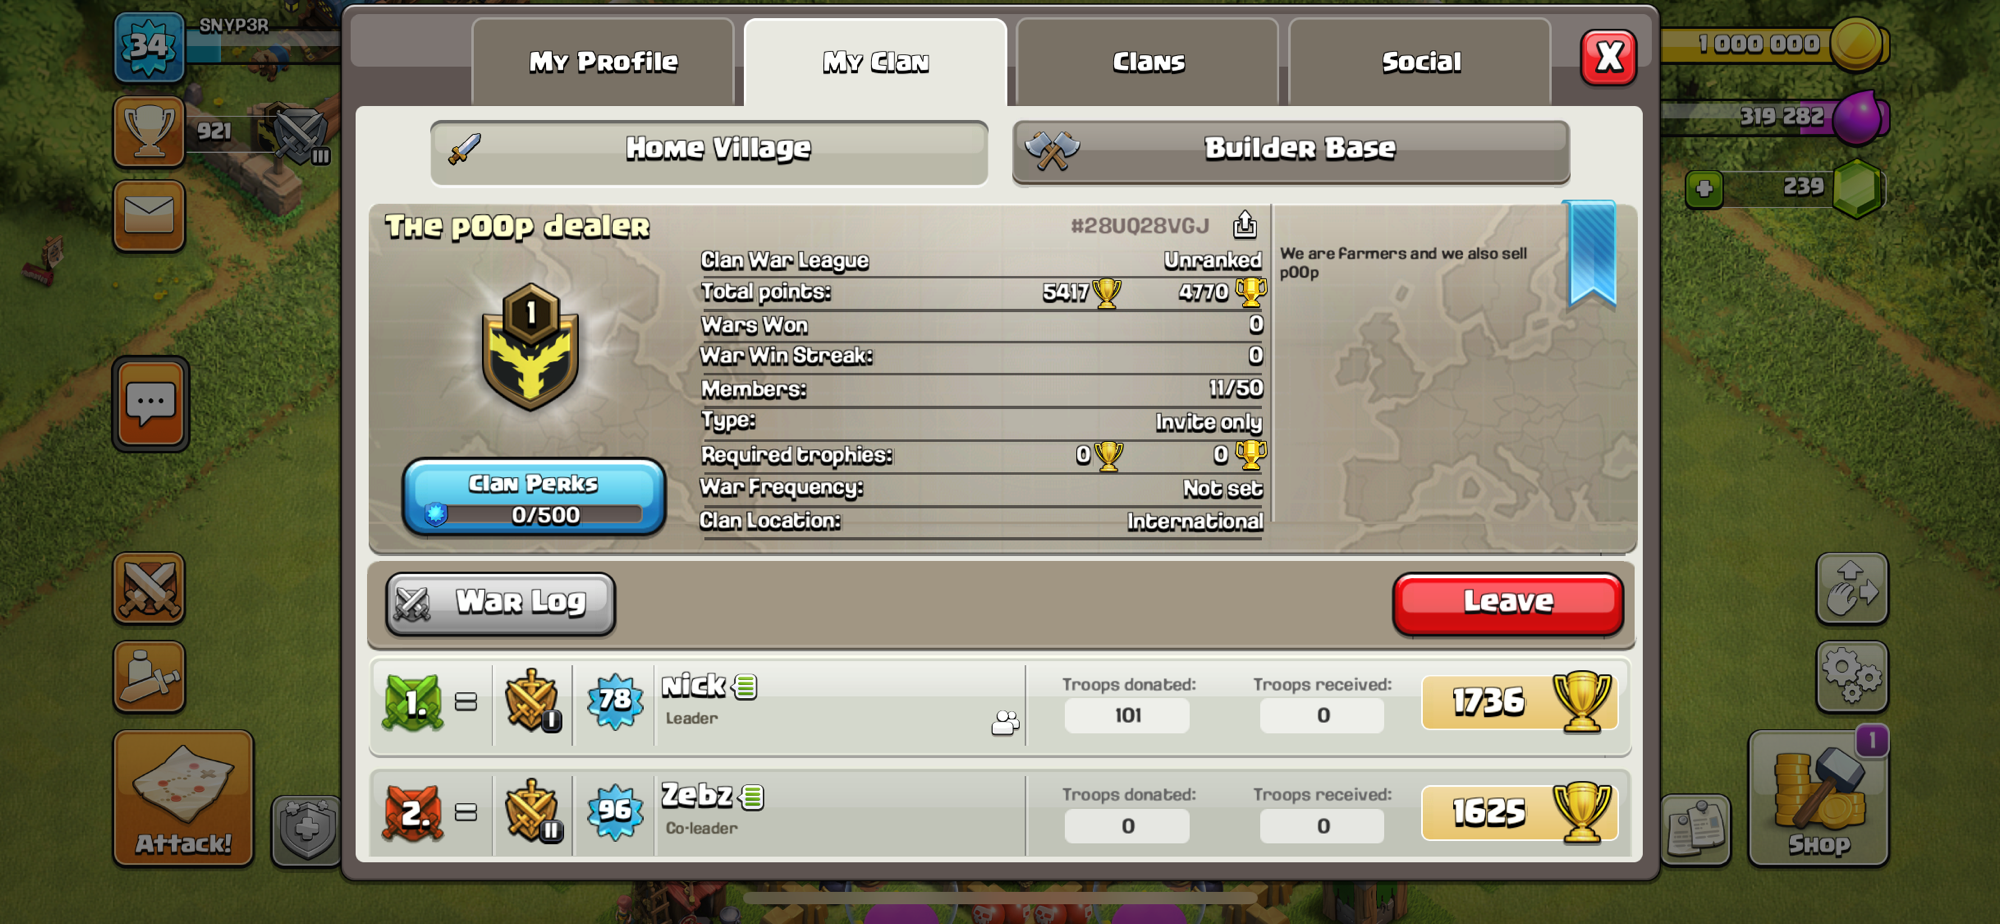 please join our clan (inactive and rushed bases get kicked by the leader) we need 4 players for war!